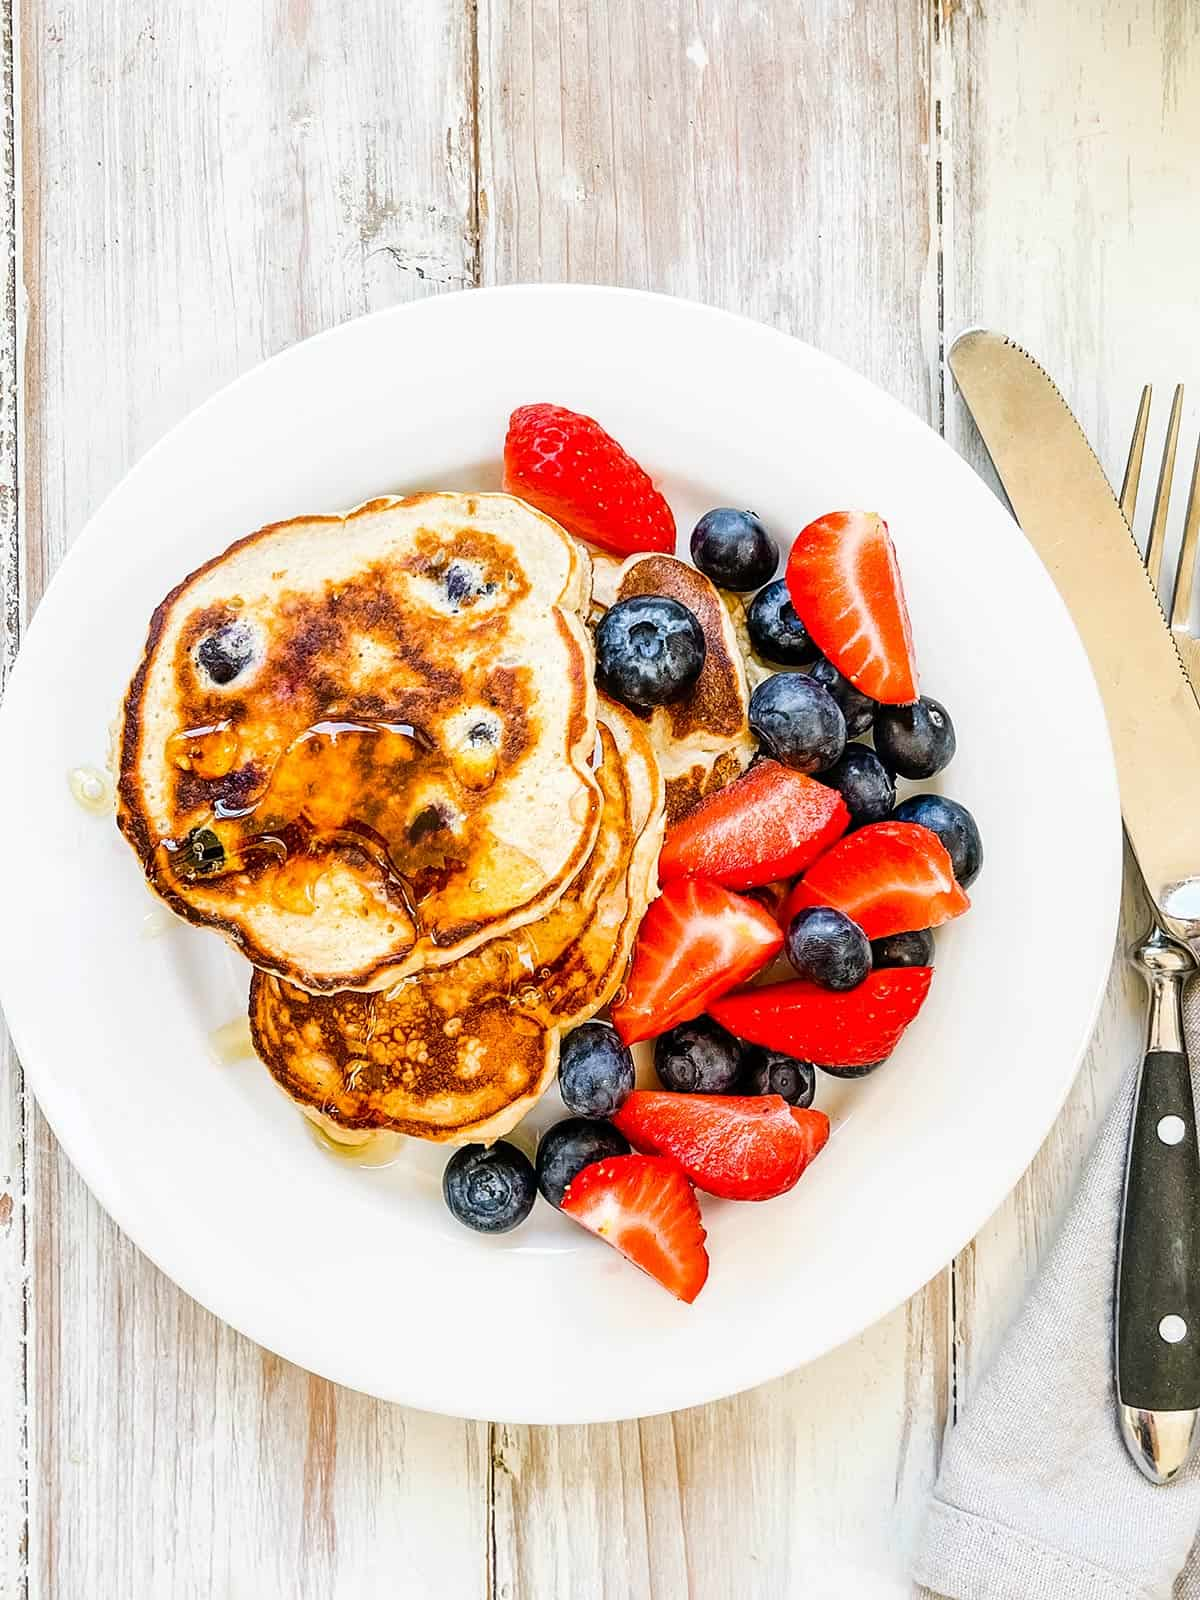 A plate of pancakes with mixed berries on a white table.